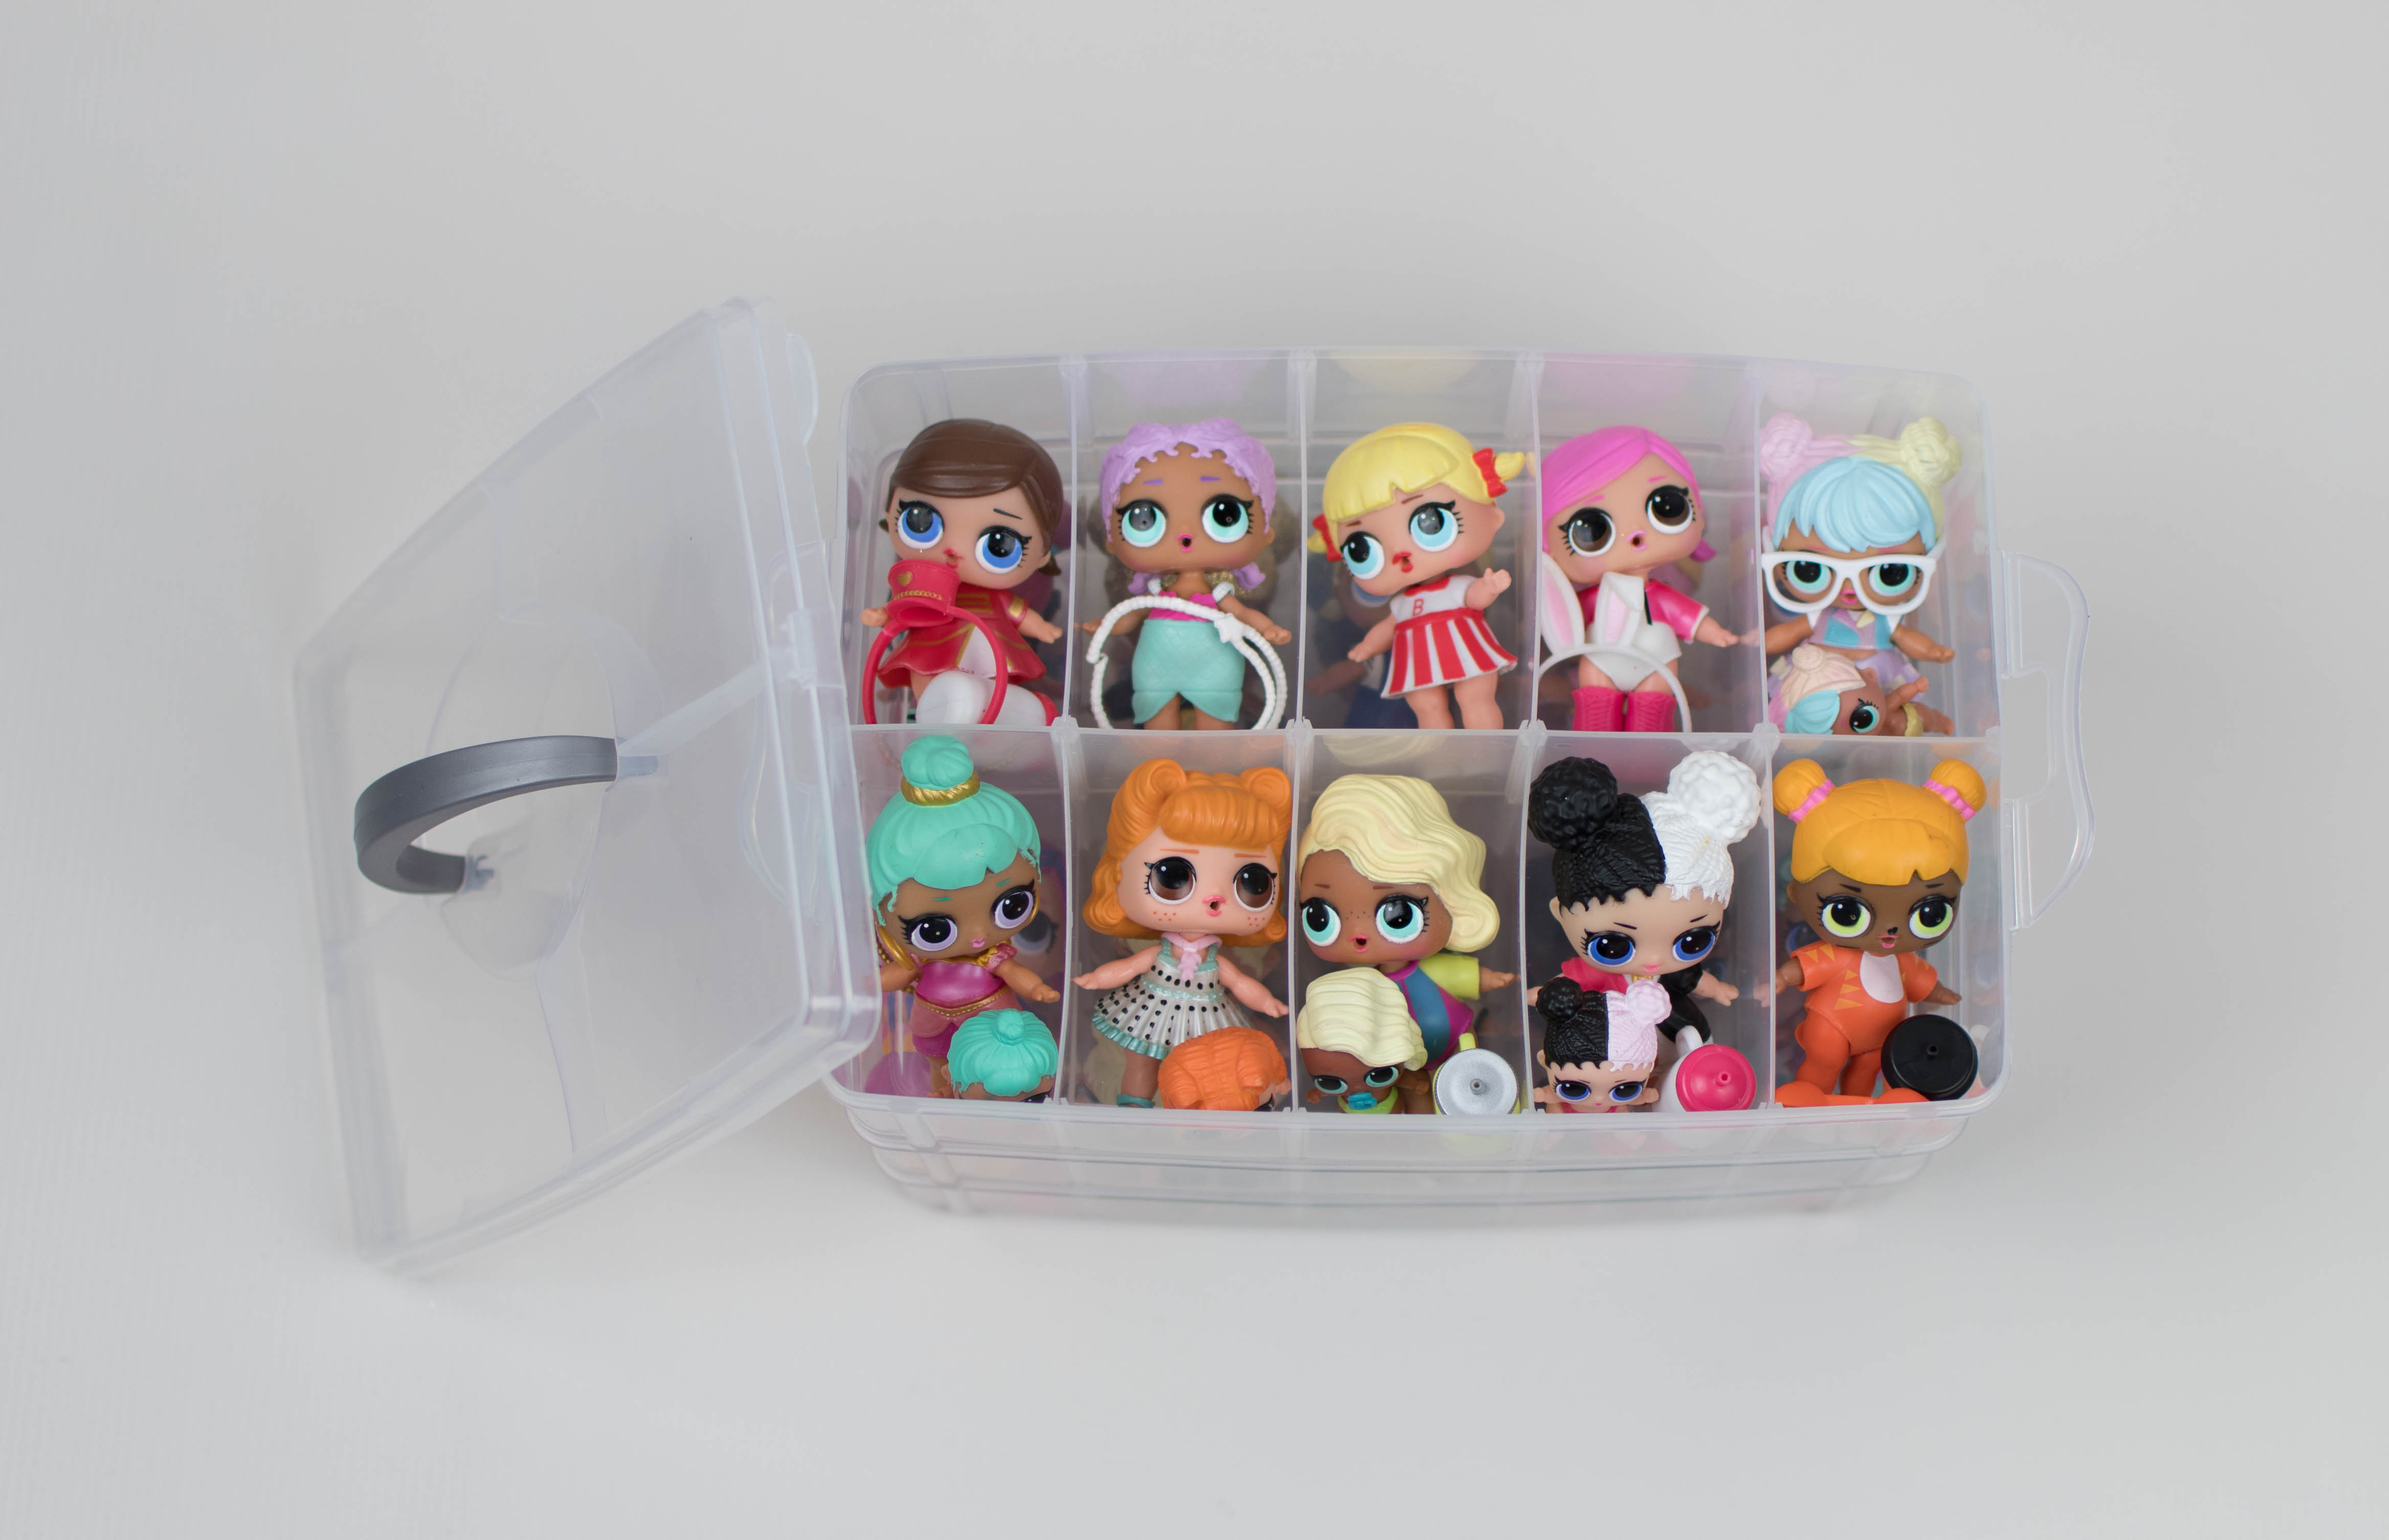 Tomy Tepy Toy Storage Organizer Case Stackable 30 Compartments U2013 Compatible  With LOL Surprise Dolls (Dolls Not Included)